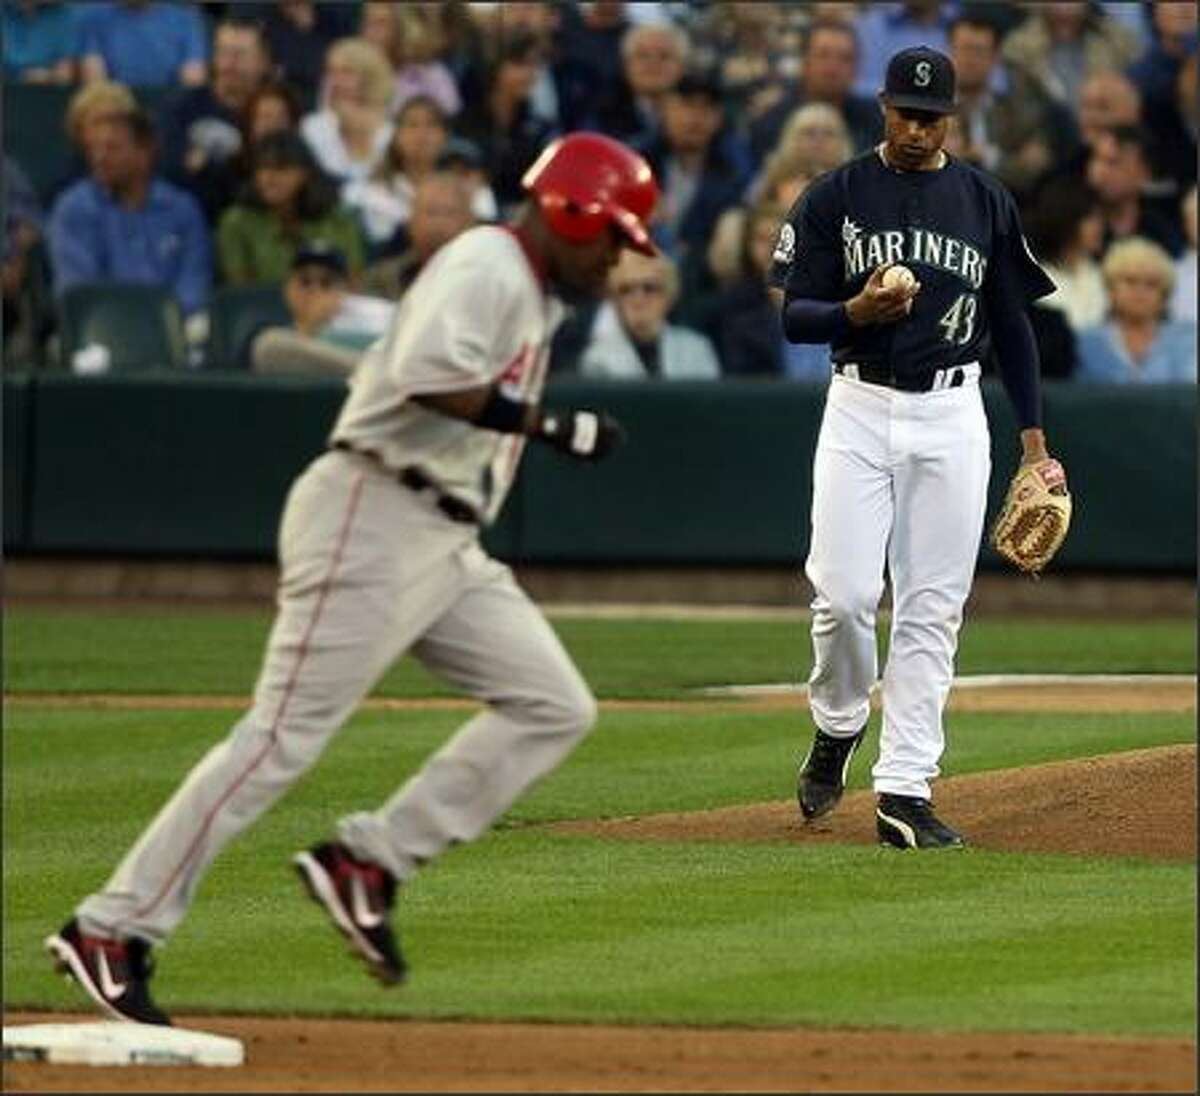 Seattle Mariners Miguel Batista examines the ball after giving up a solo home run to Los Angeles Angels Garret Anderson during second inning action at Safeco Field in Seattle, Wash., Monday August 27, 2007.